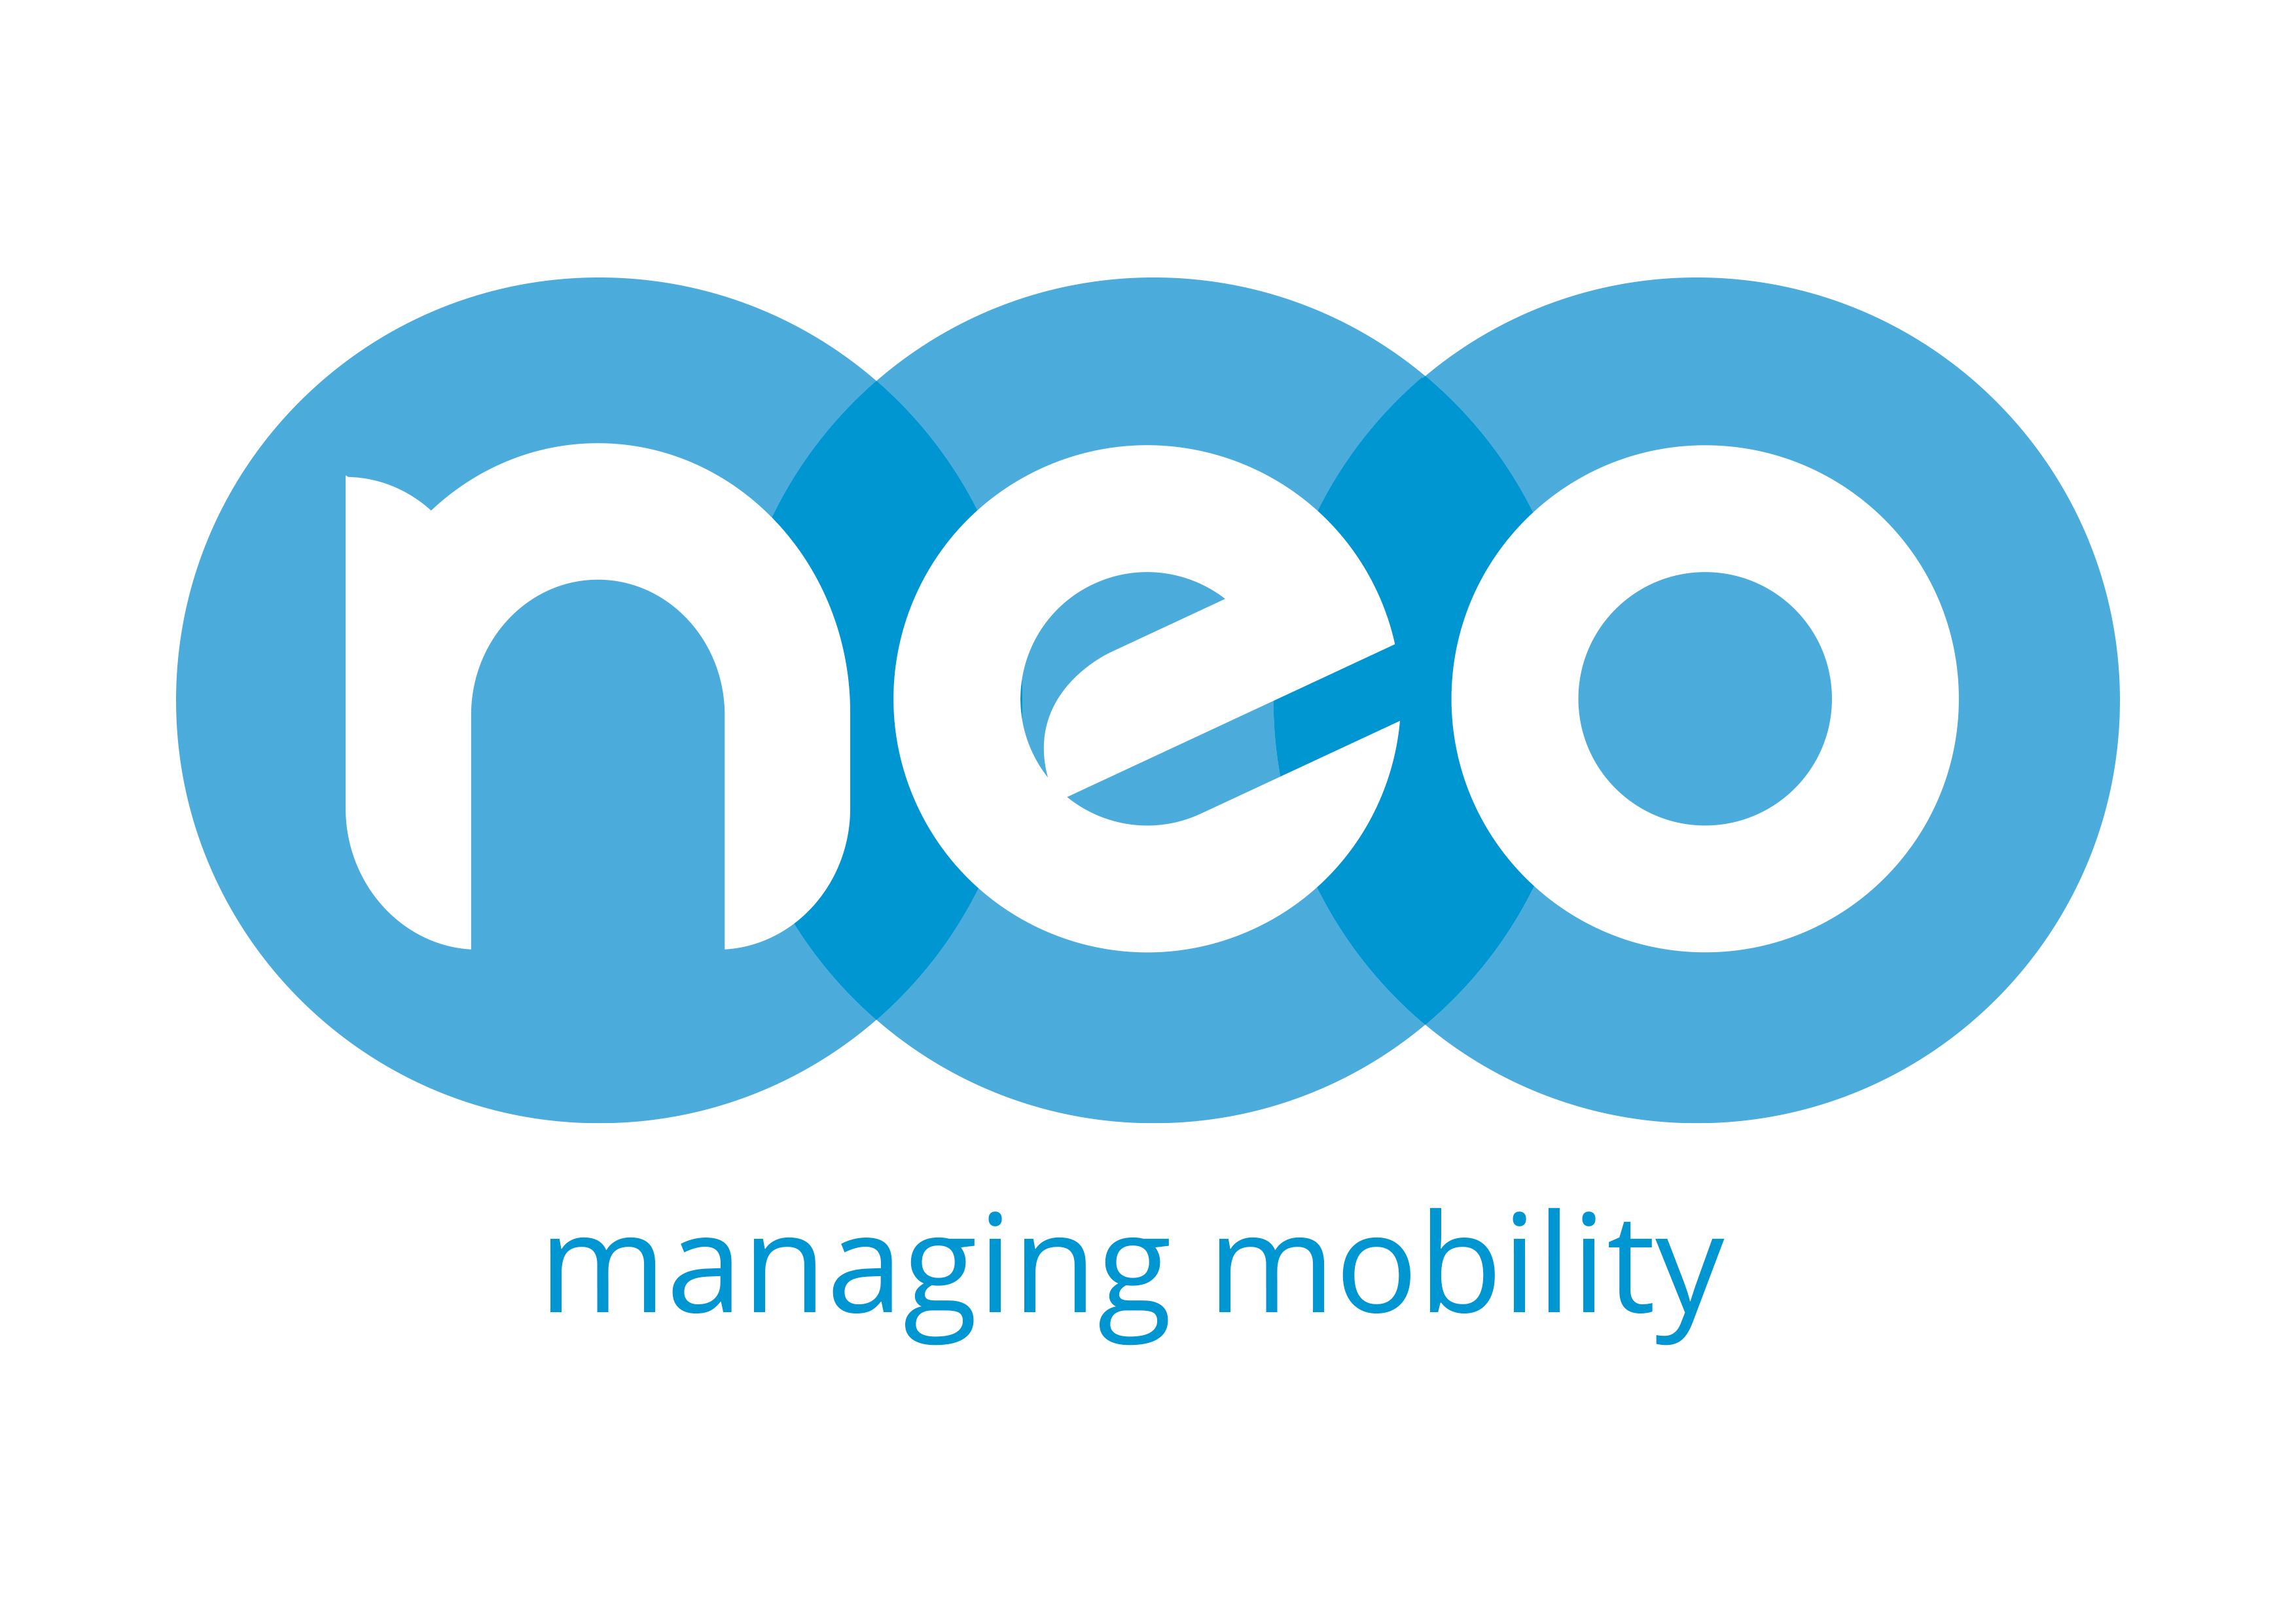 Logotipo NEO managing mobility